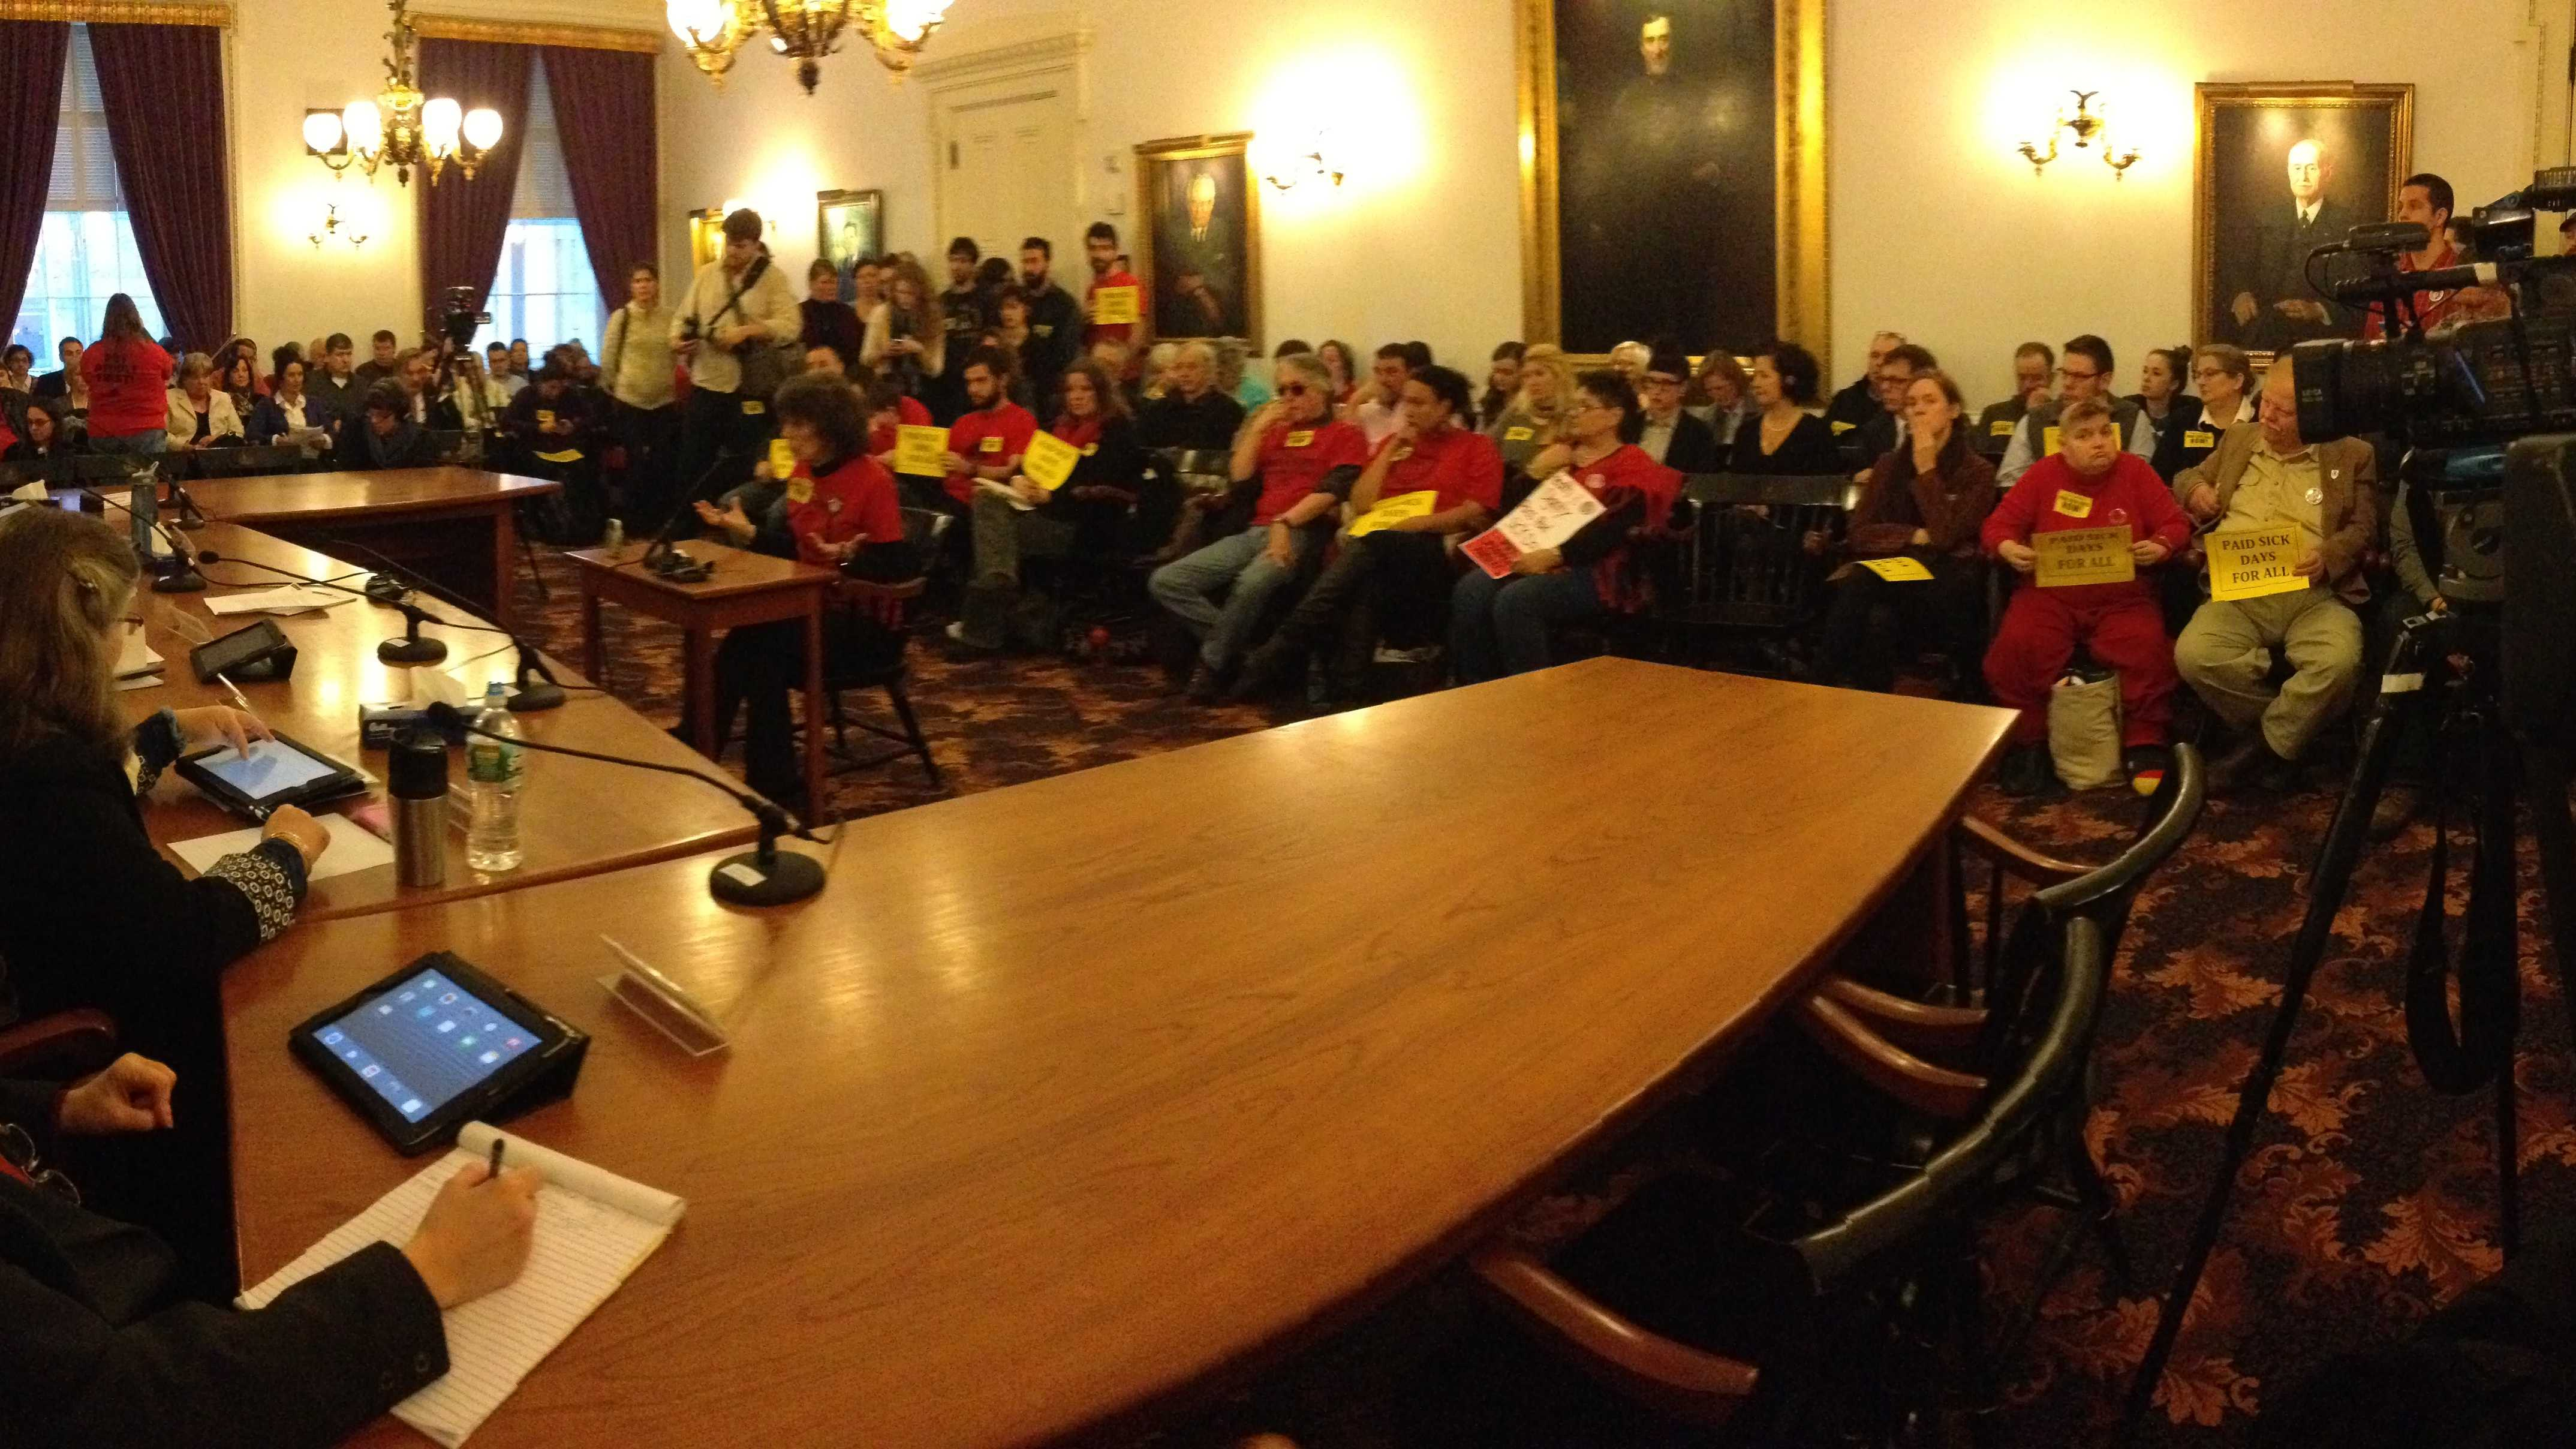 A public hearing at the Statehouse over the paid sick leave bill drew a standing room only crowd.